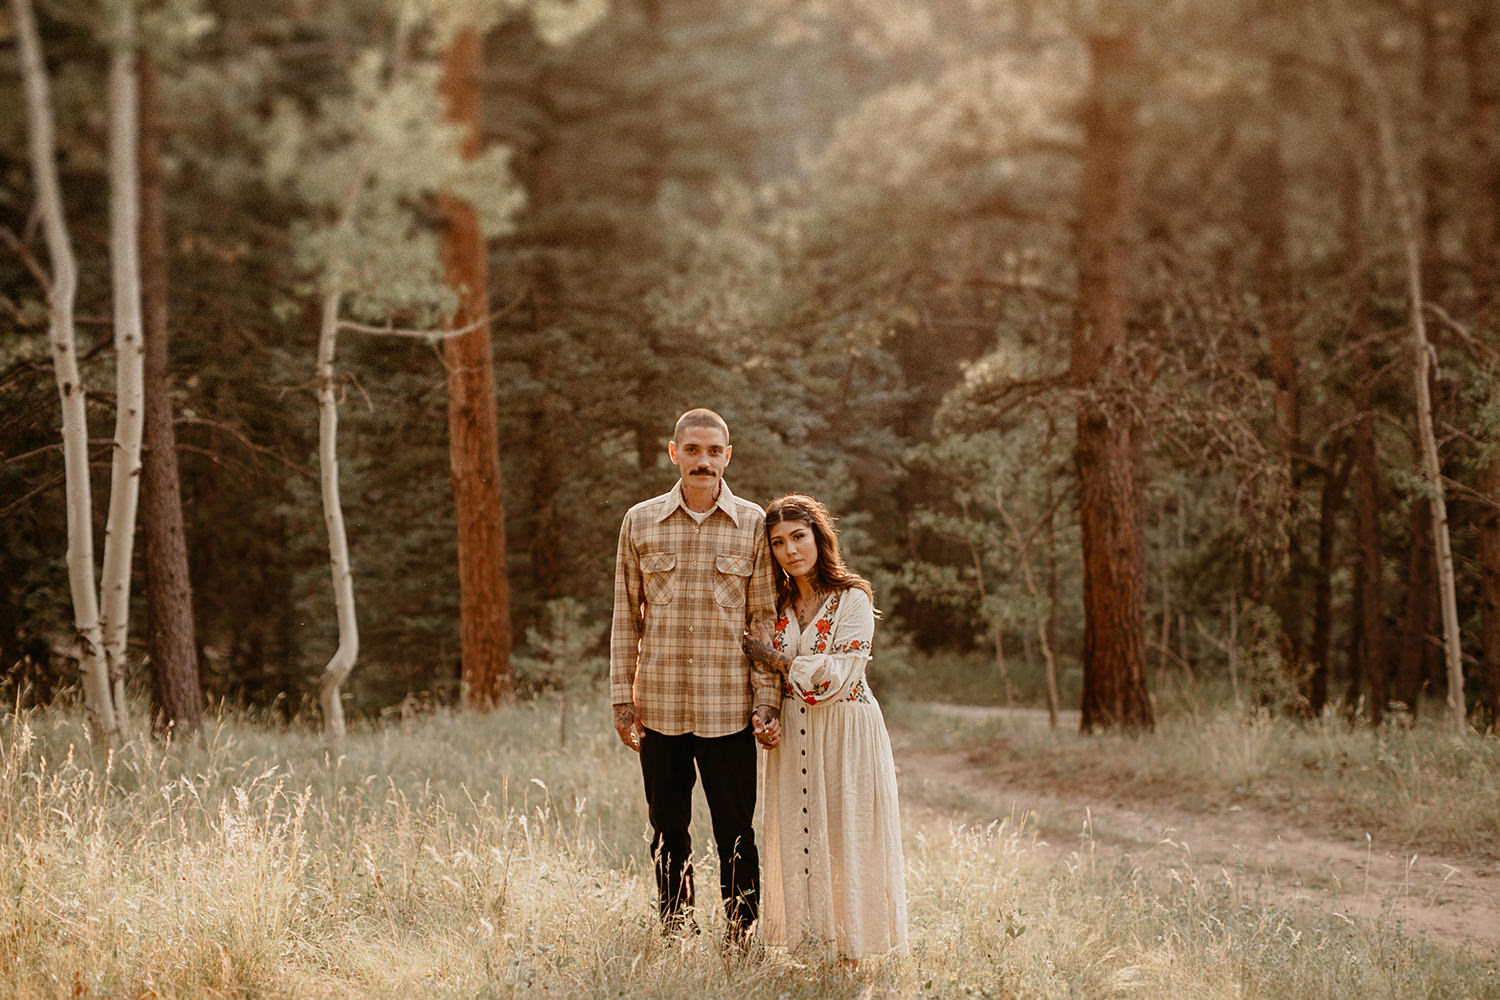 Bailey Colorado Denver Wedding Engagement Photographer Liz Osban Cheyenne Wyoming Mountain Elopement Boho bohemian vintage film tattoo non traditional tattooed rock and roll 26.jpg